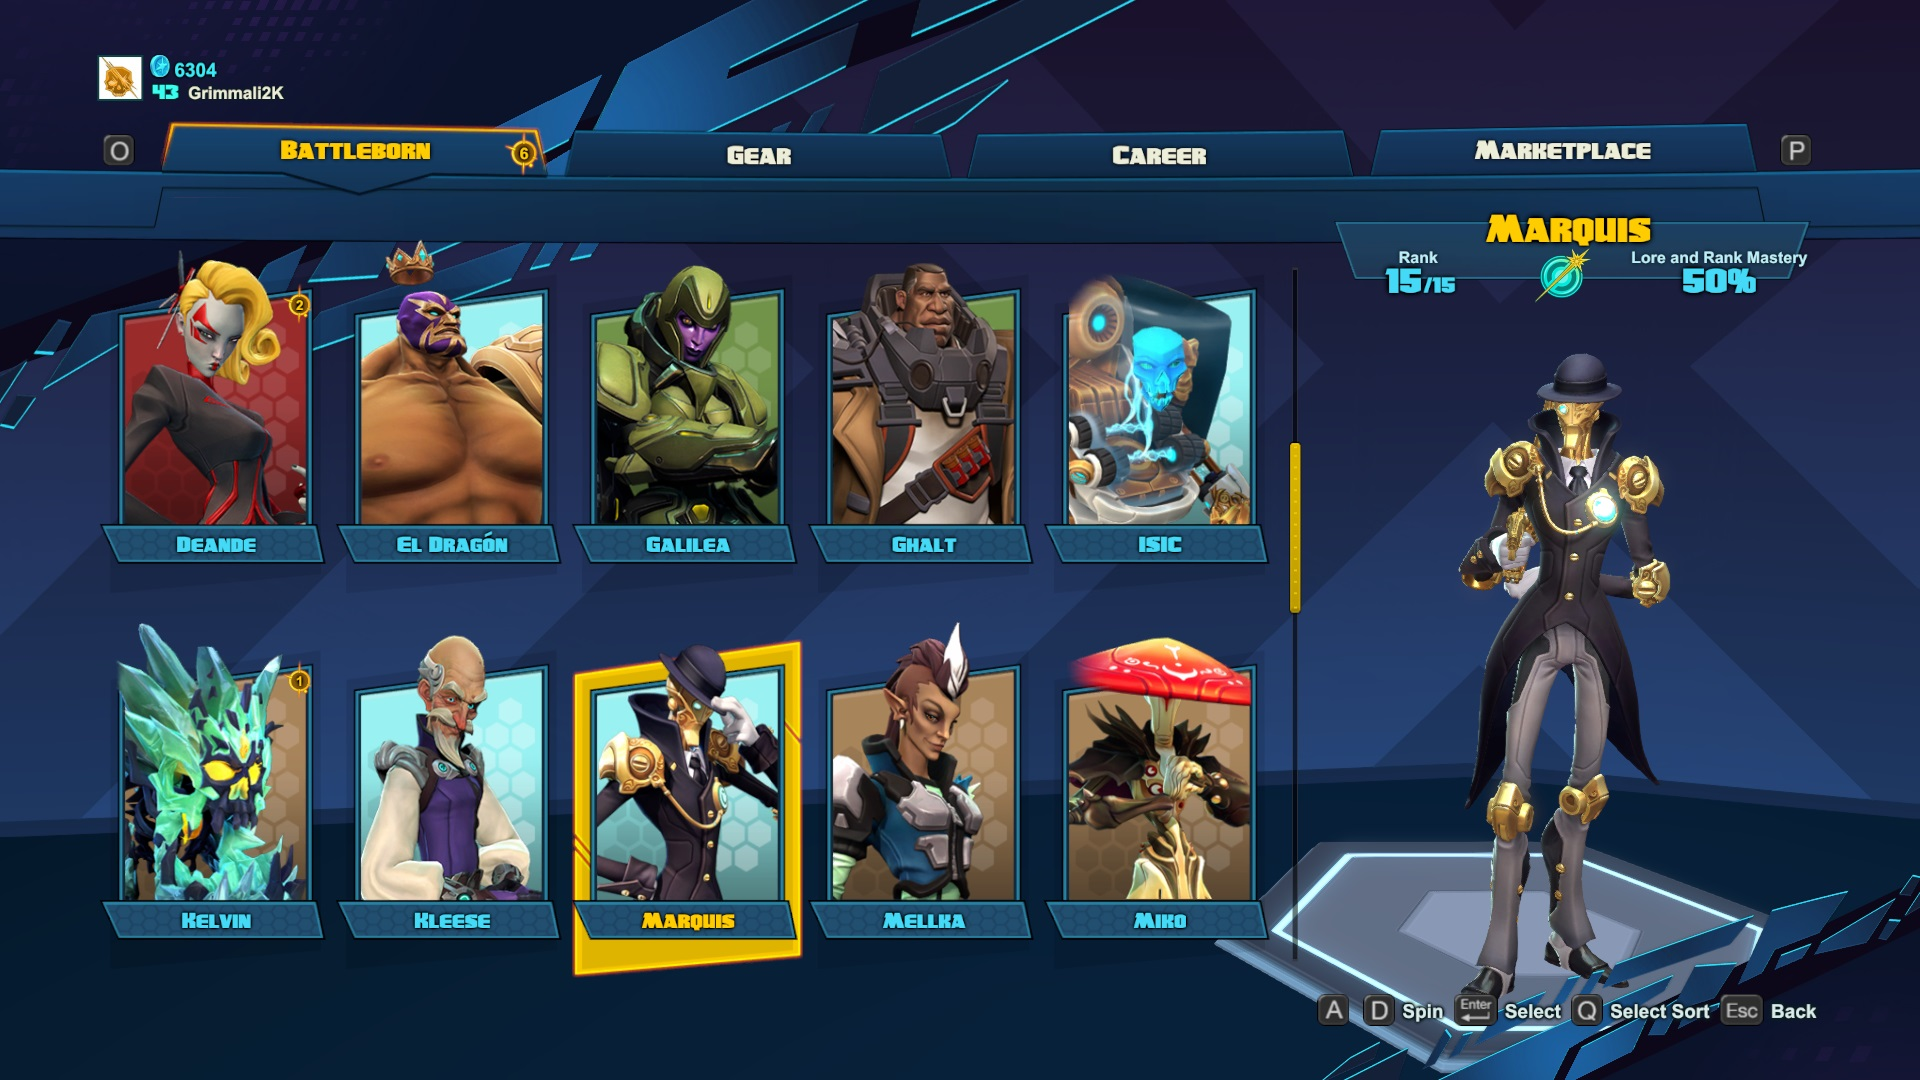 Battleborn Game Features Explained